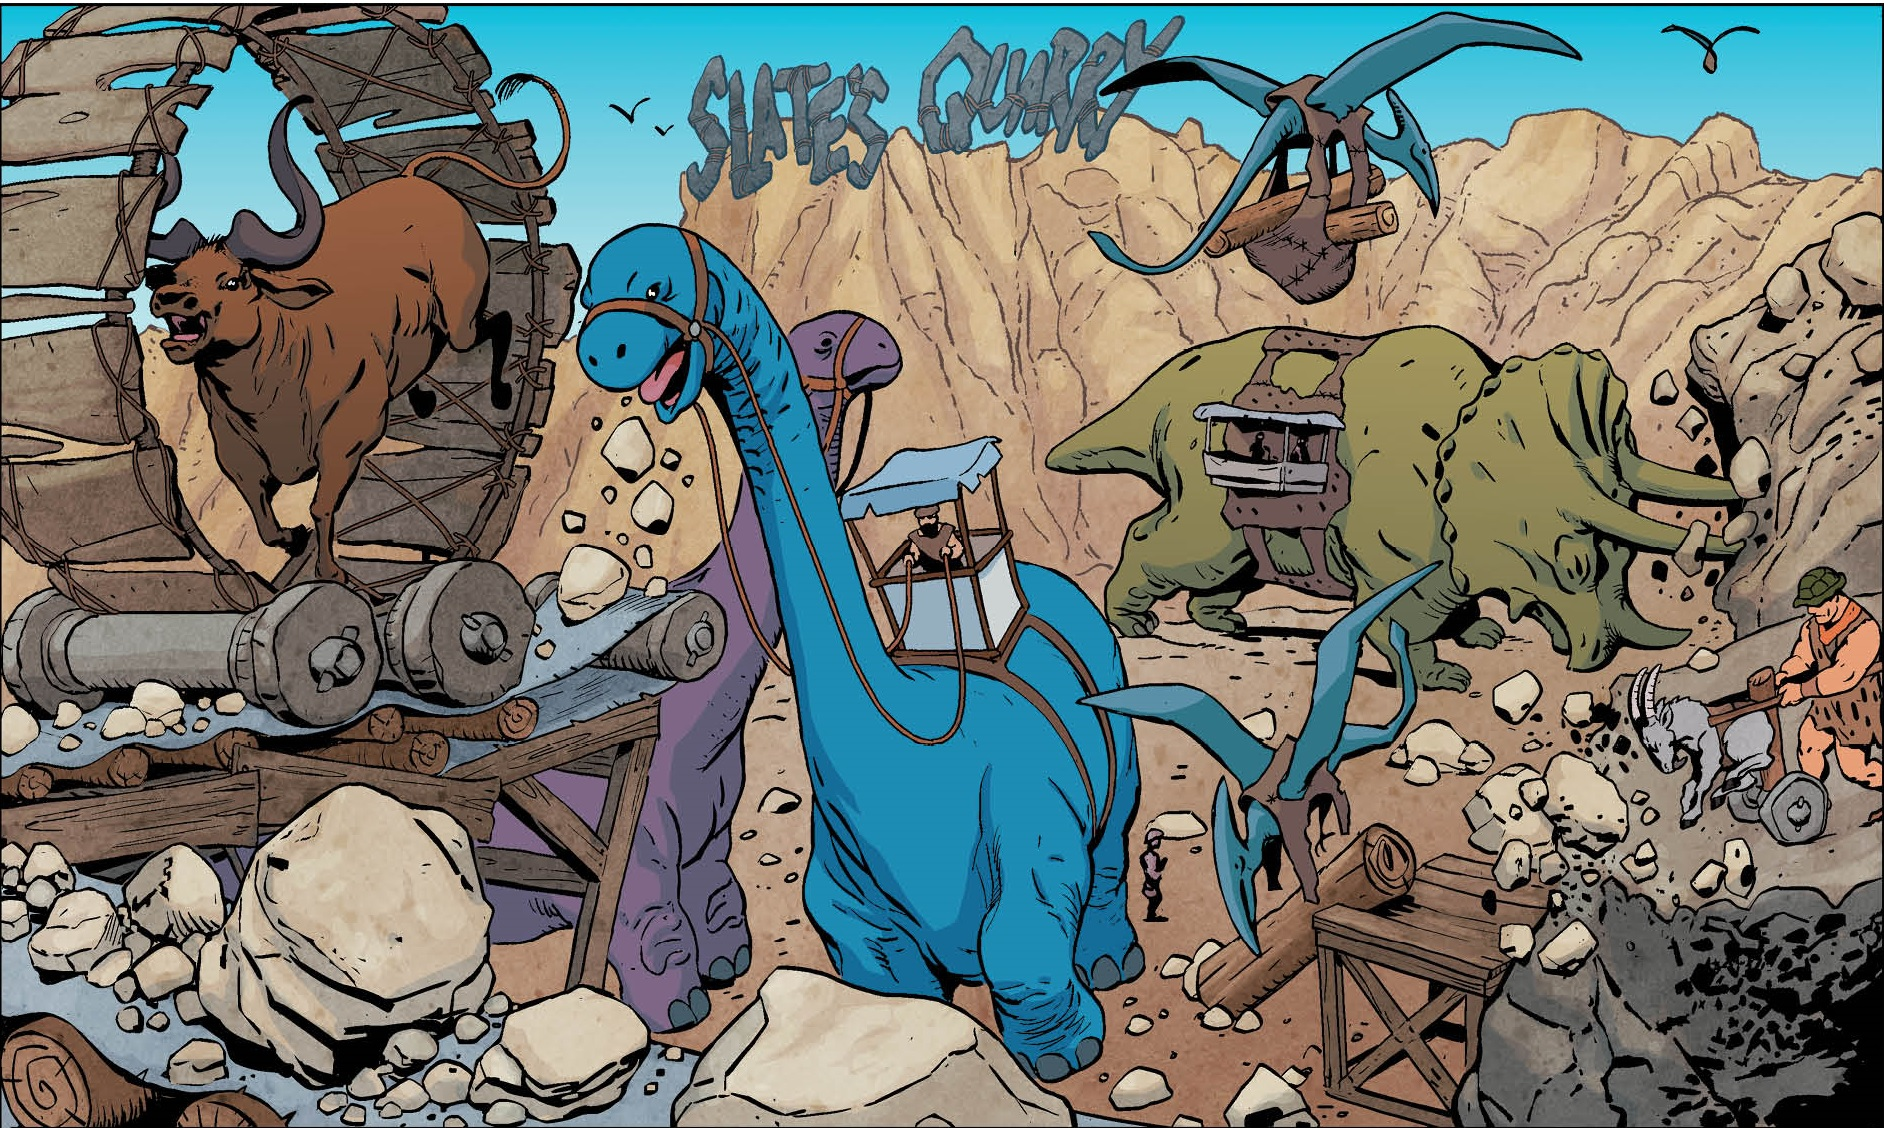 Taking a property as iconic as the Flintstones and bringing it into the modern era is always a challenging endeavor, yet that is exactly what writer Mark Russell and artists Steve Pugh and Chris Chuckry seek to do withThe Flinstones #1. Is it good?